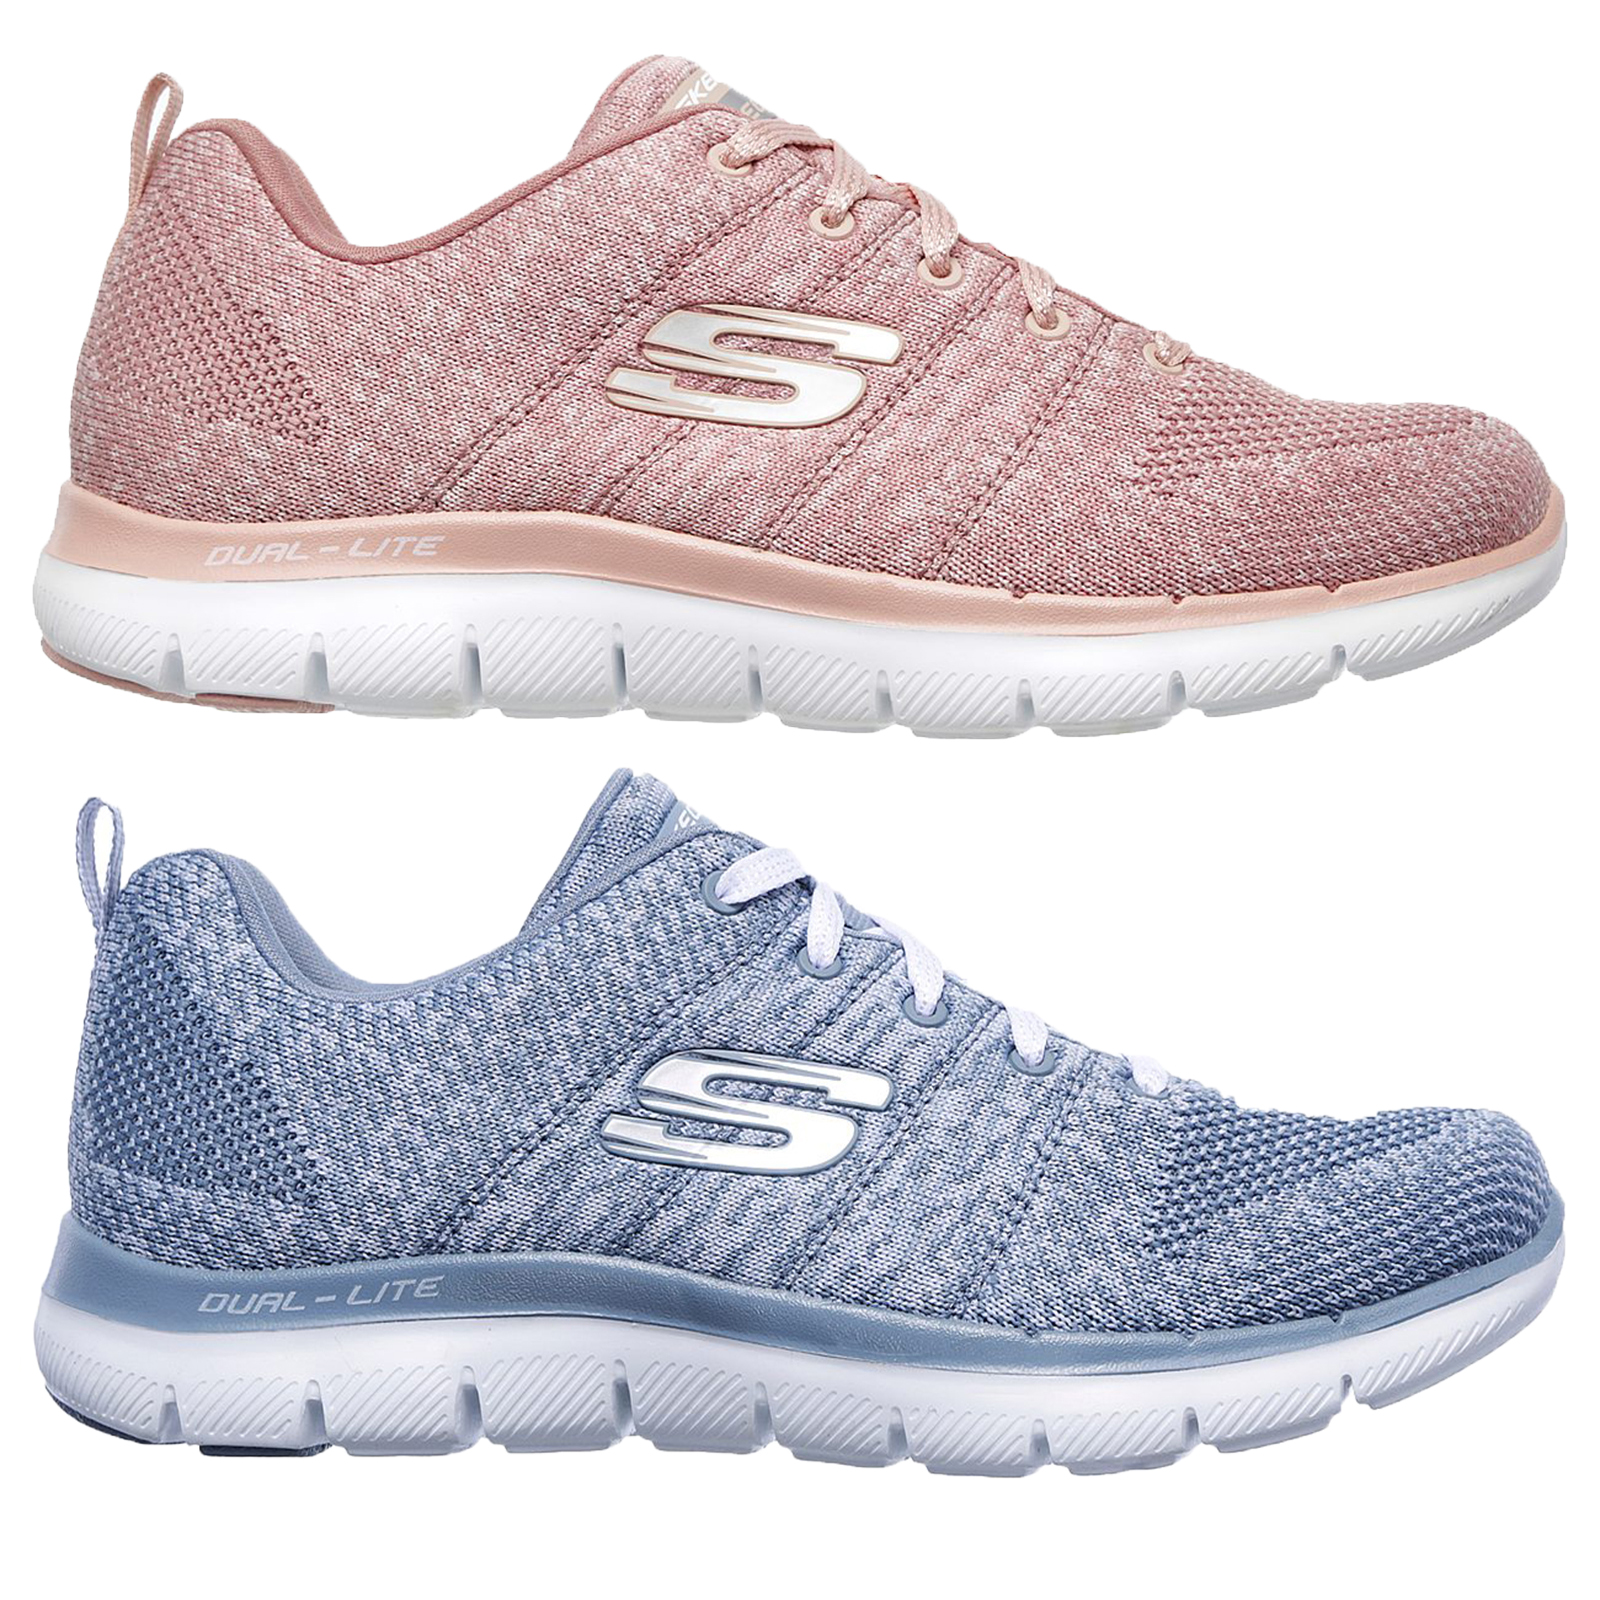 07453c133078c Skechers Womens Sports Flex Appeal 2.0 High Energy Trainer Soft ...